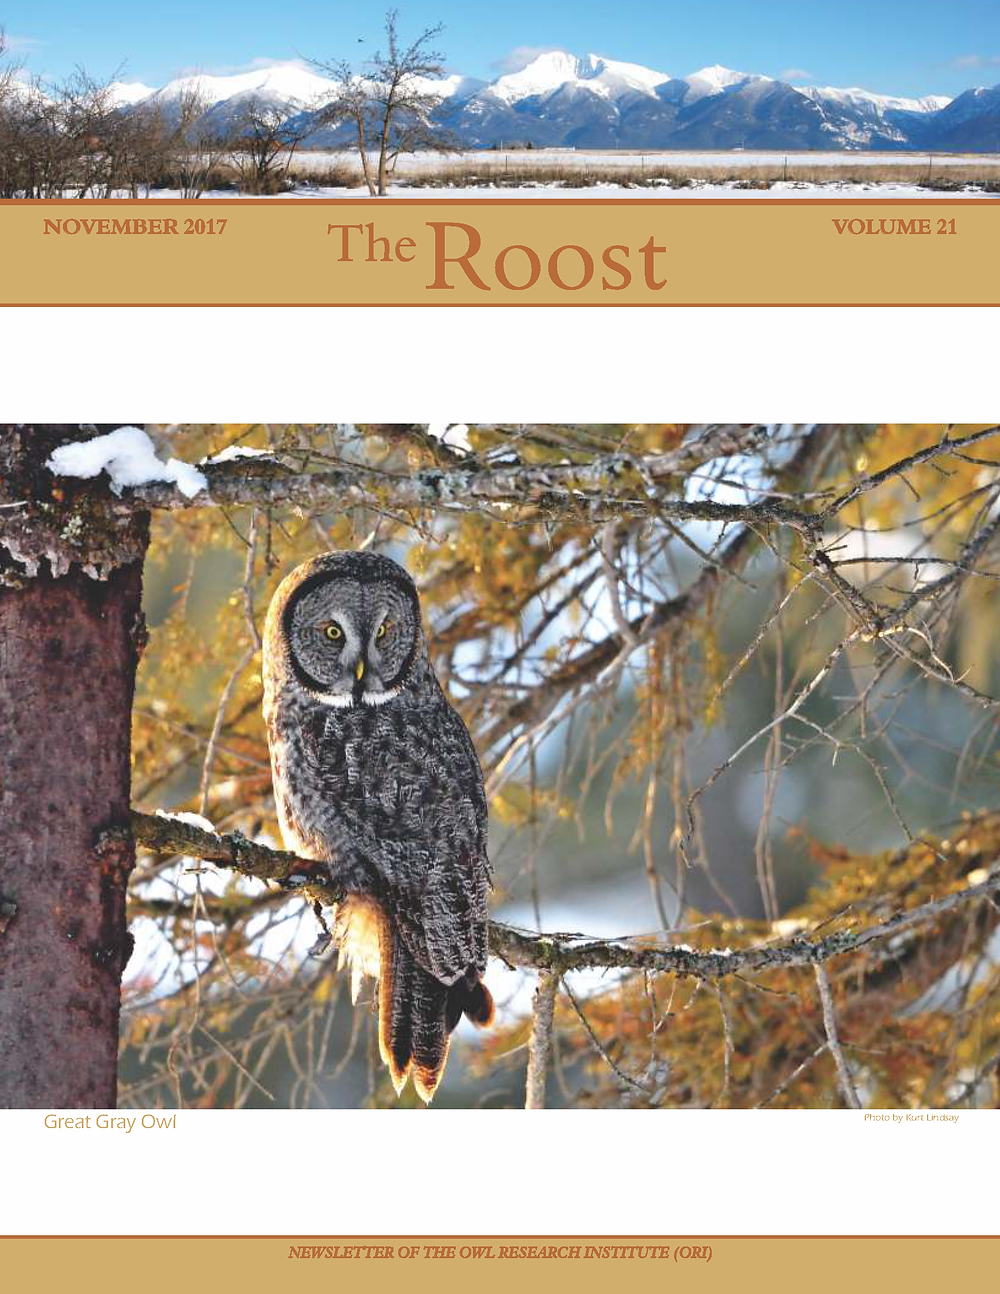 The Roost 2017, Annual Newsletter of the Owl Research Institute